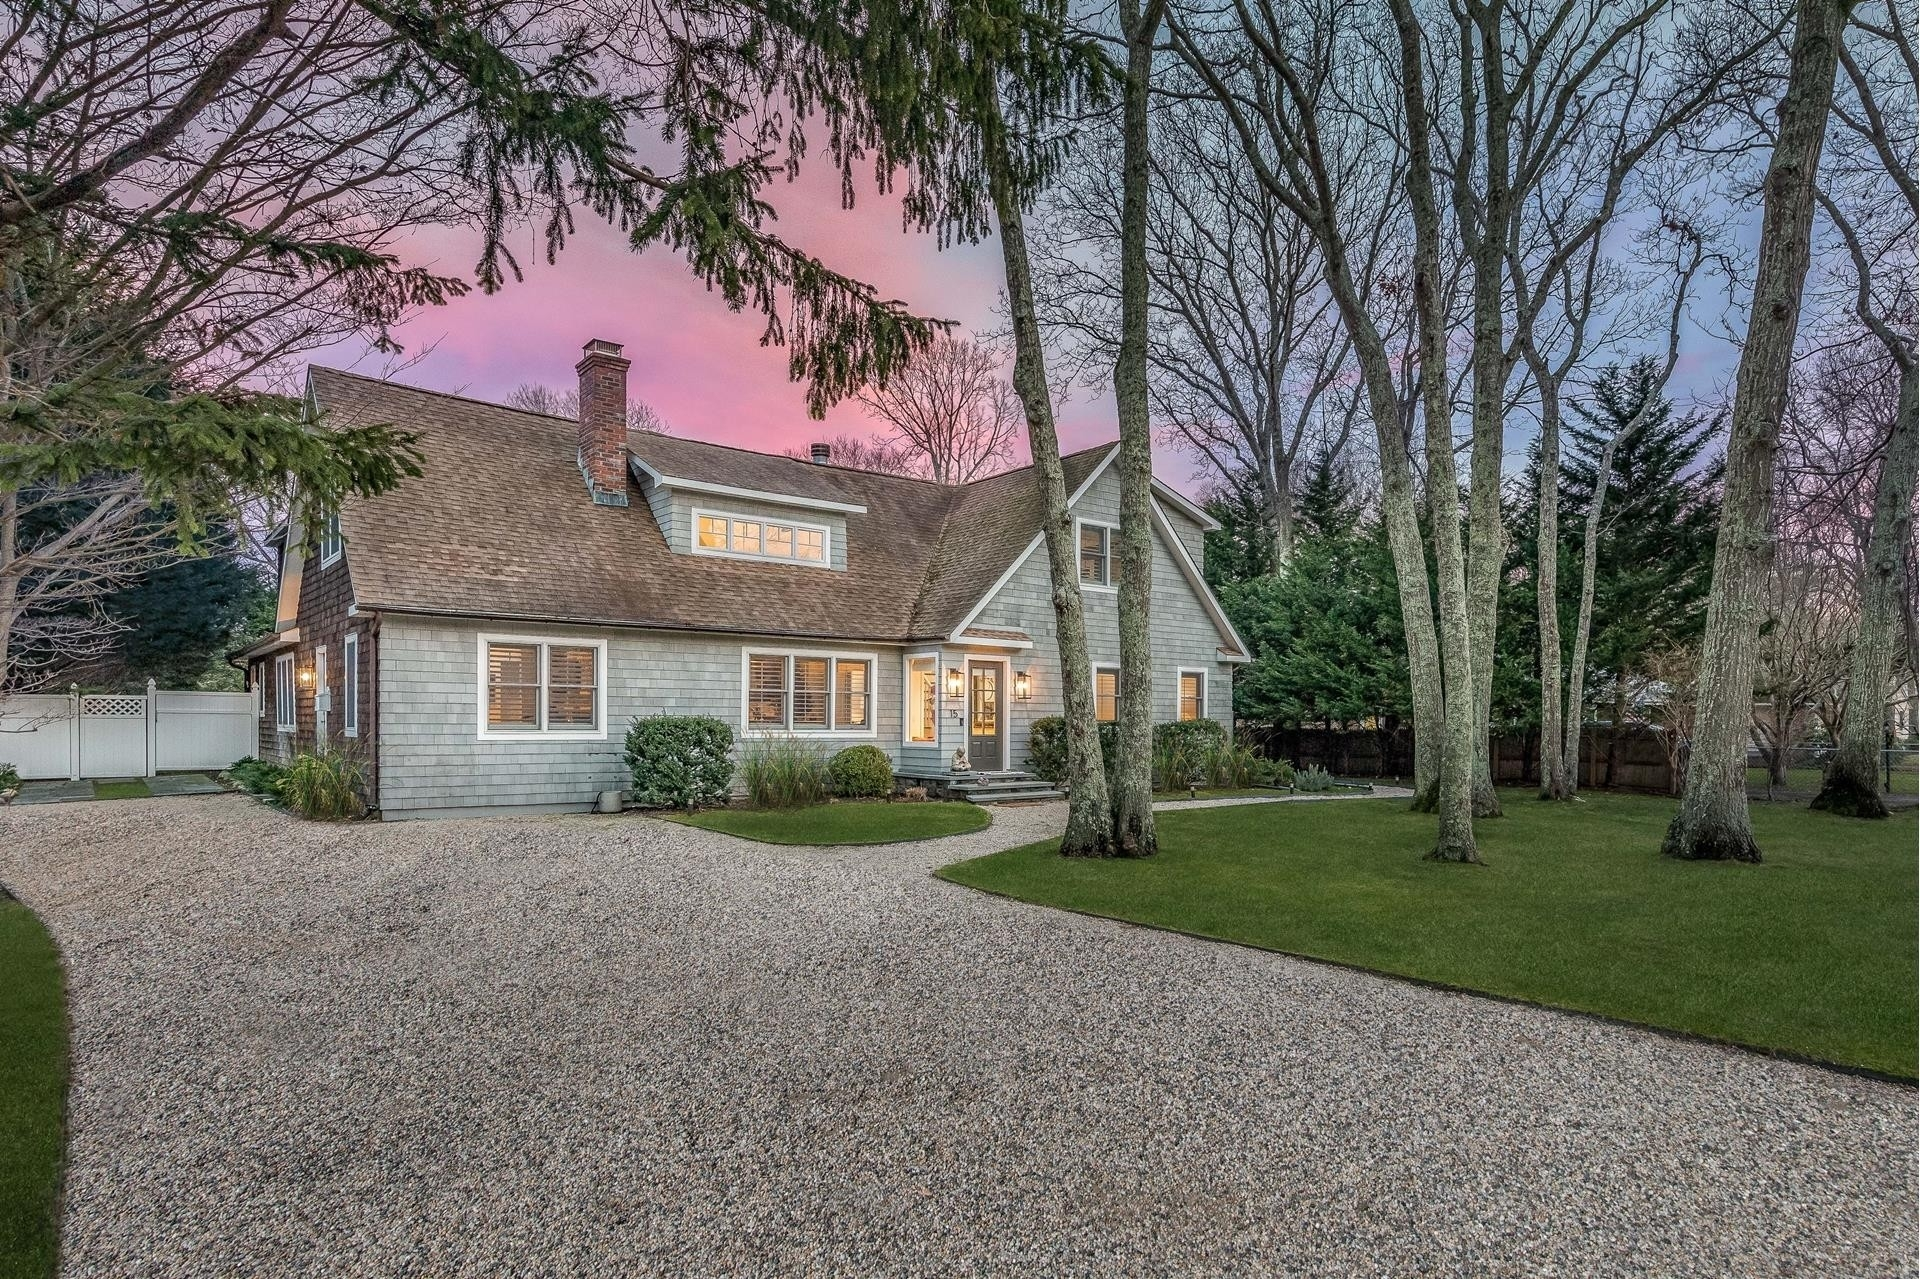 Property at Sag Harbor Village, Sag Harbor, NY 11963